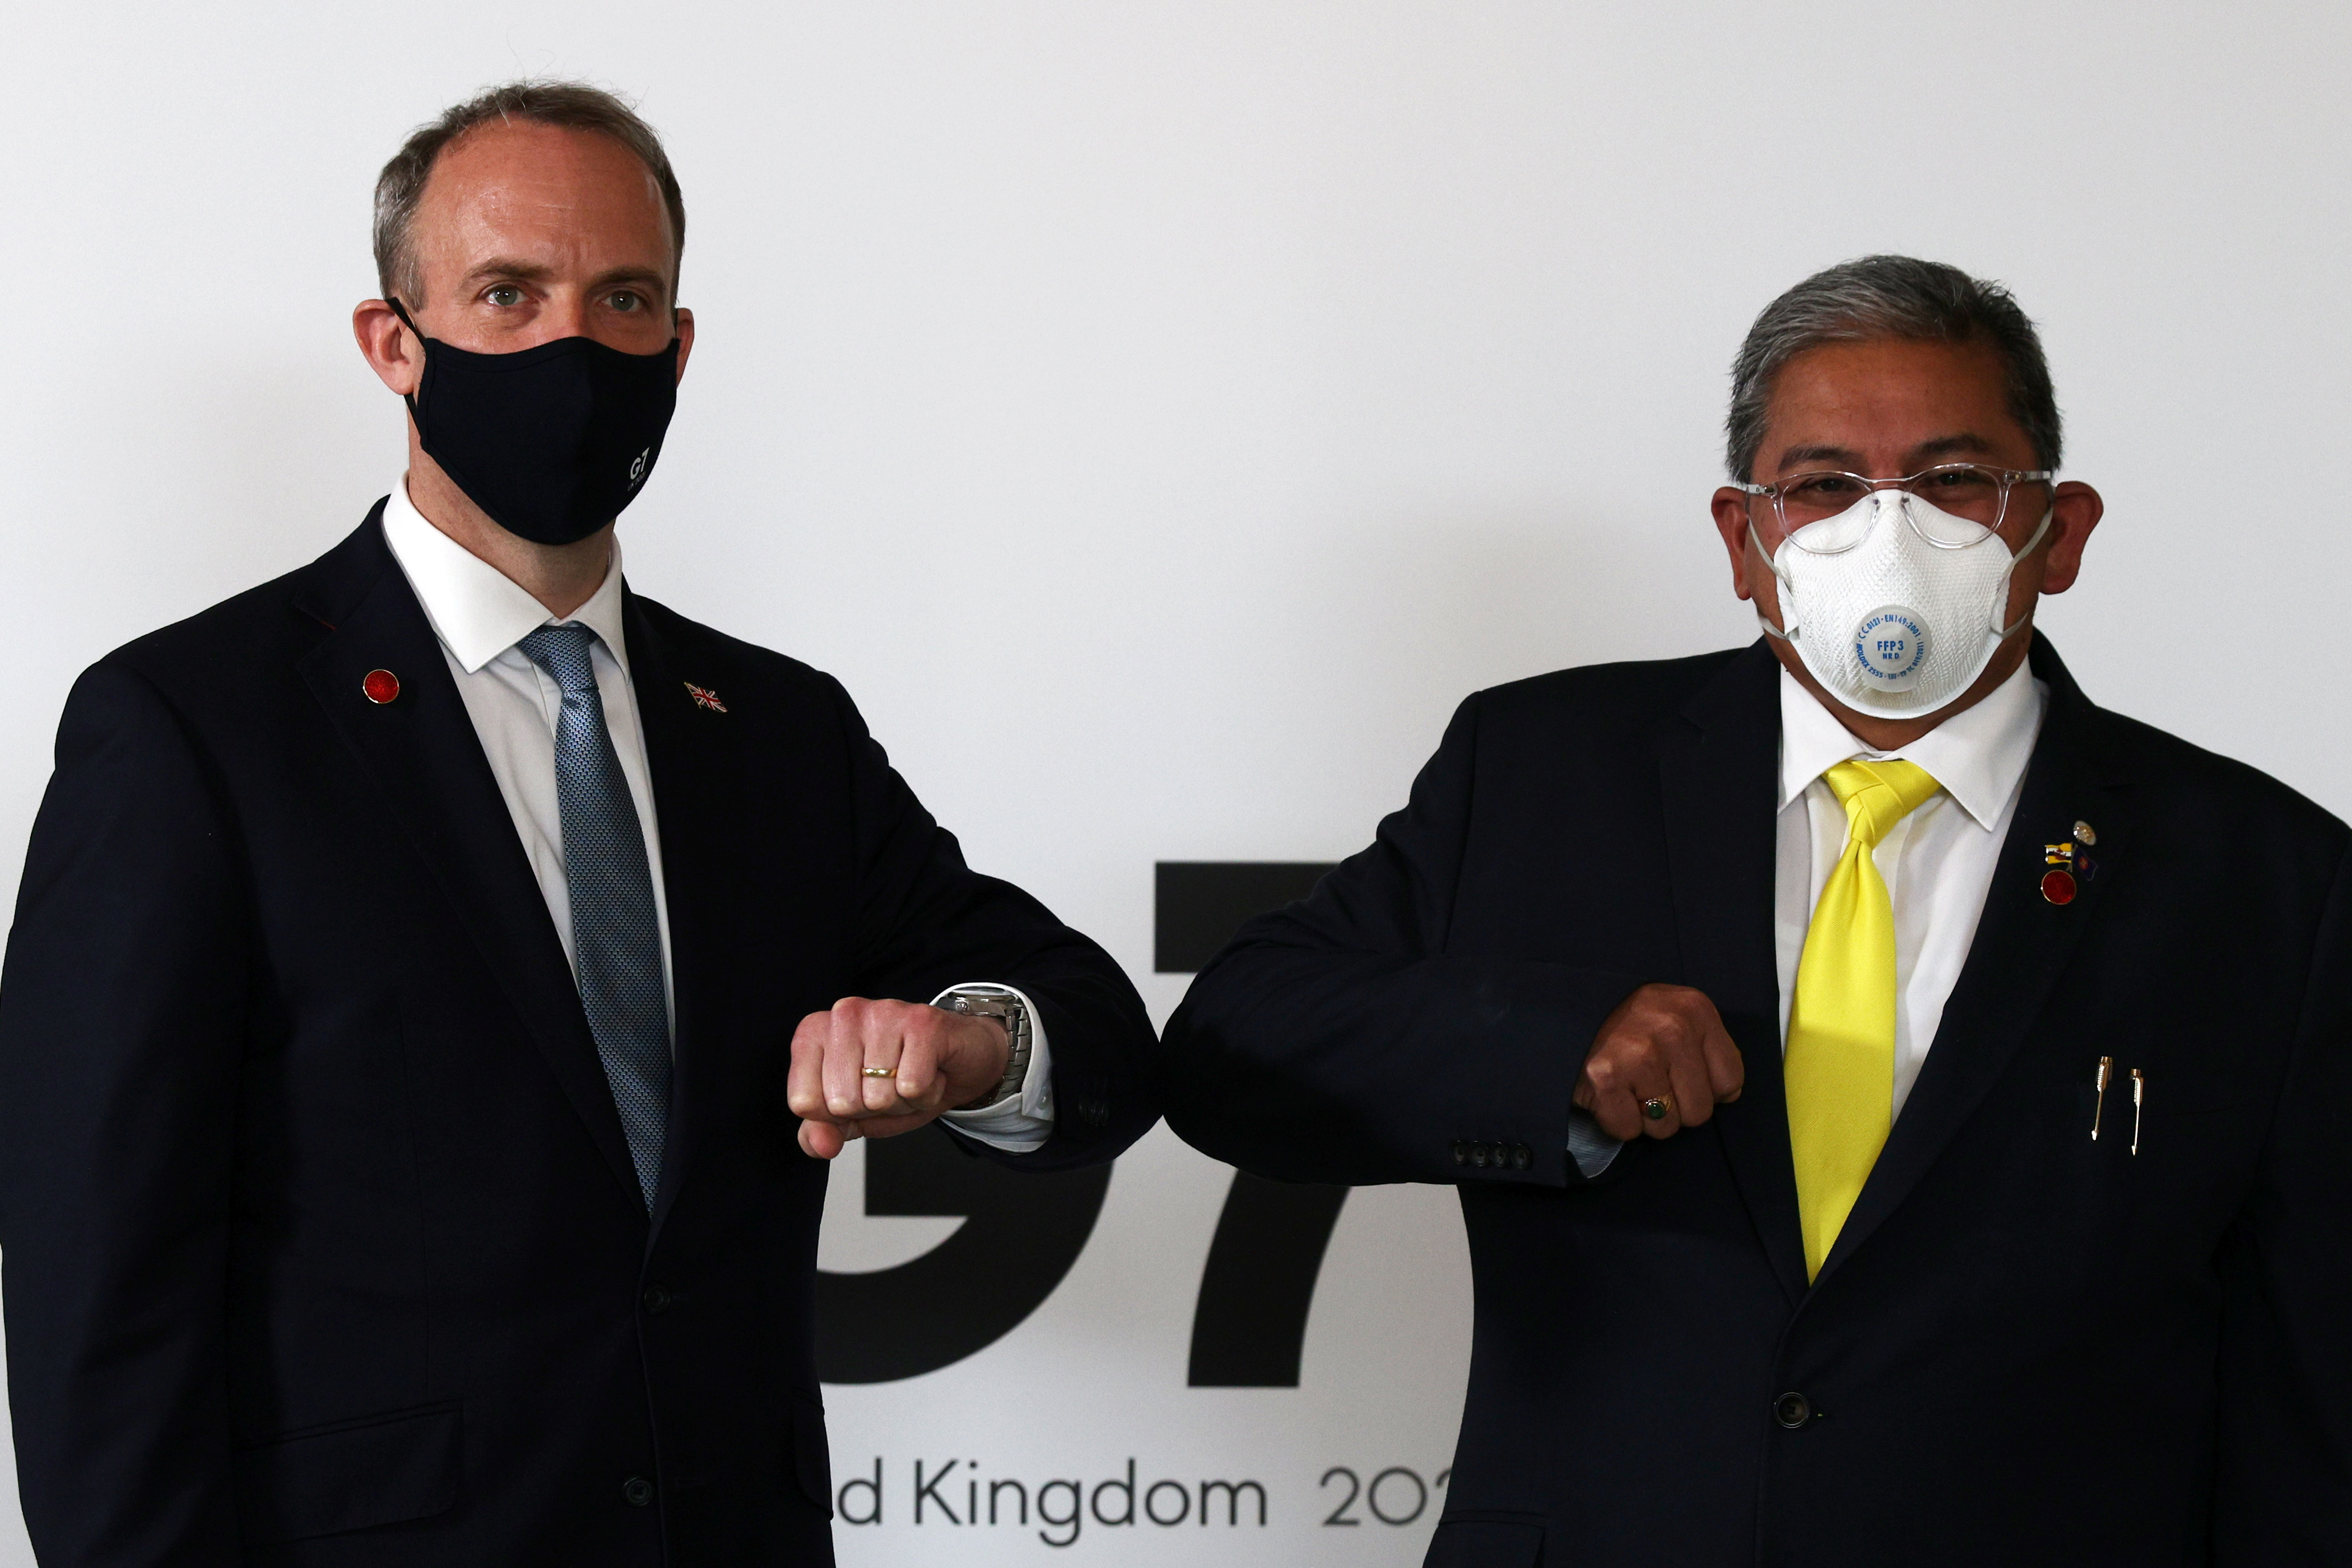 Britain's Foreign Secretary Dominic Raab poses with Brunei Second Minister of Foreign affairs Erywan Yusof during a bilateral meeting at the G7 foreign ministers meeting in London, Britain May 5, 2021. Adrian Dennis/Pool via REUTERS